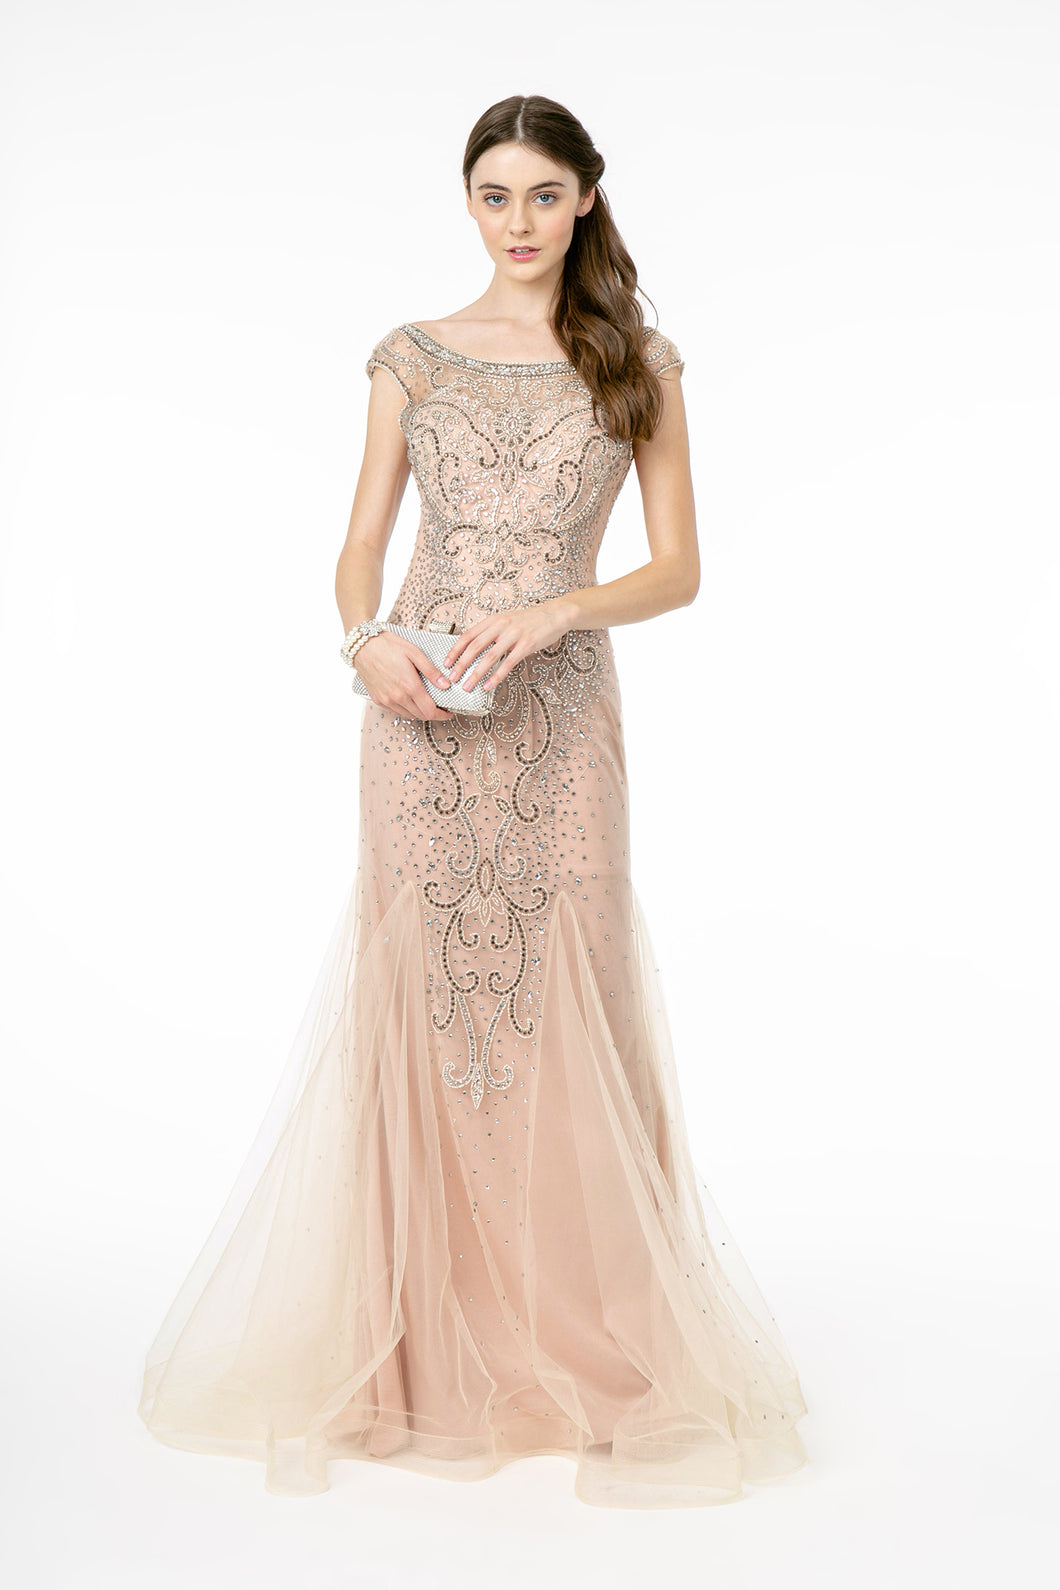 Catalina Wedding Dress Blush Flared Hem Art Deco Style Gown G2945TIR-Blush    SAMPLE IN STORE